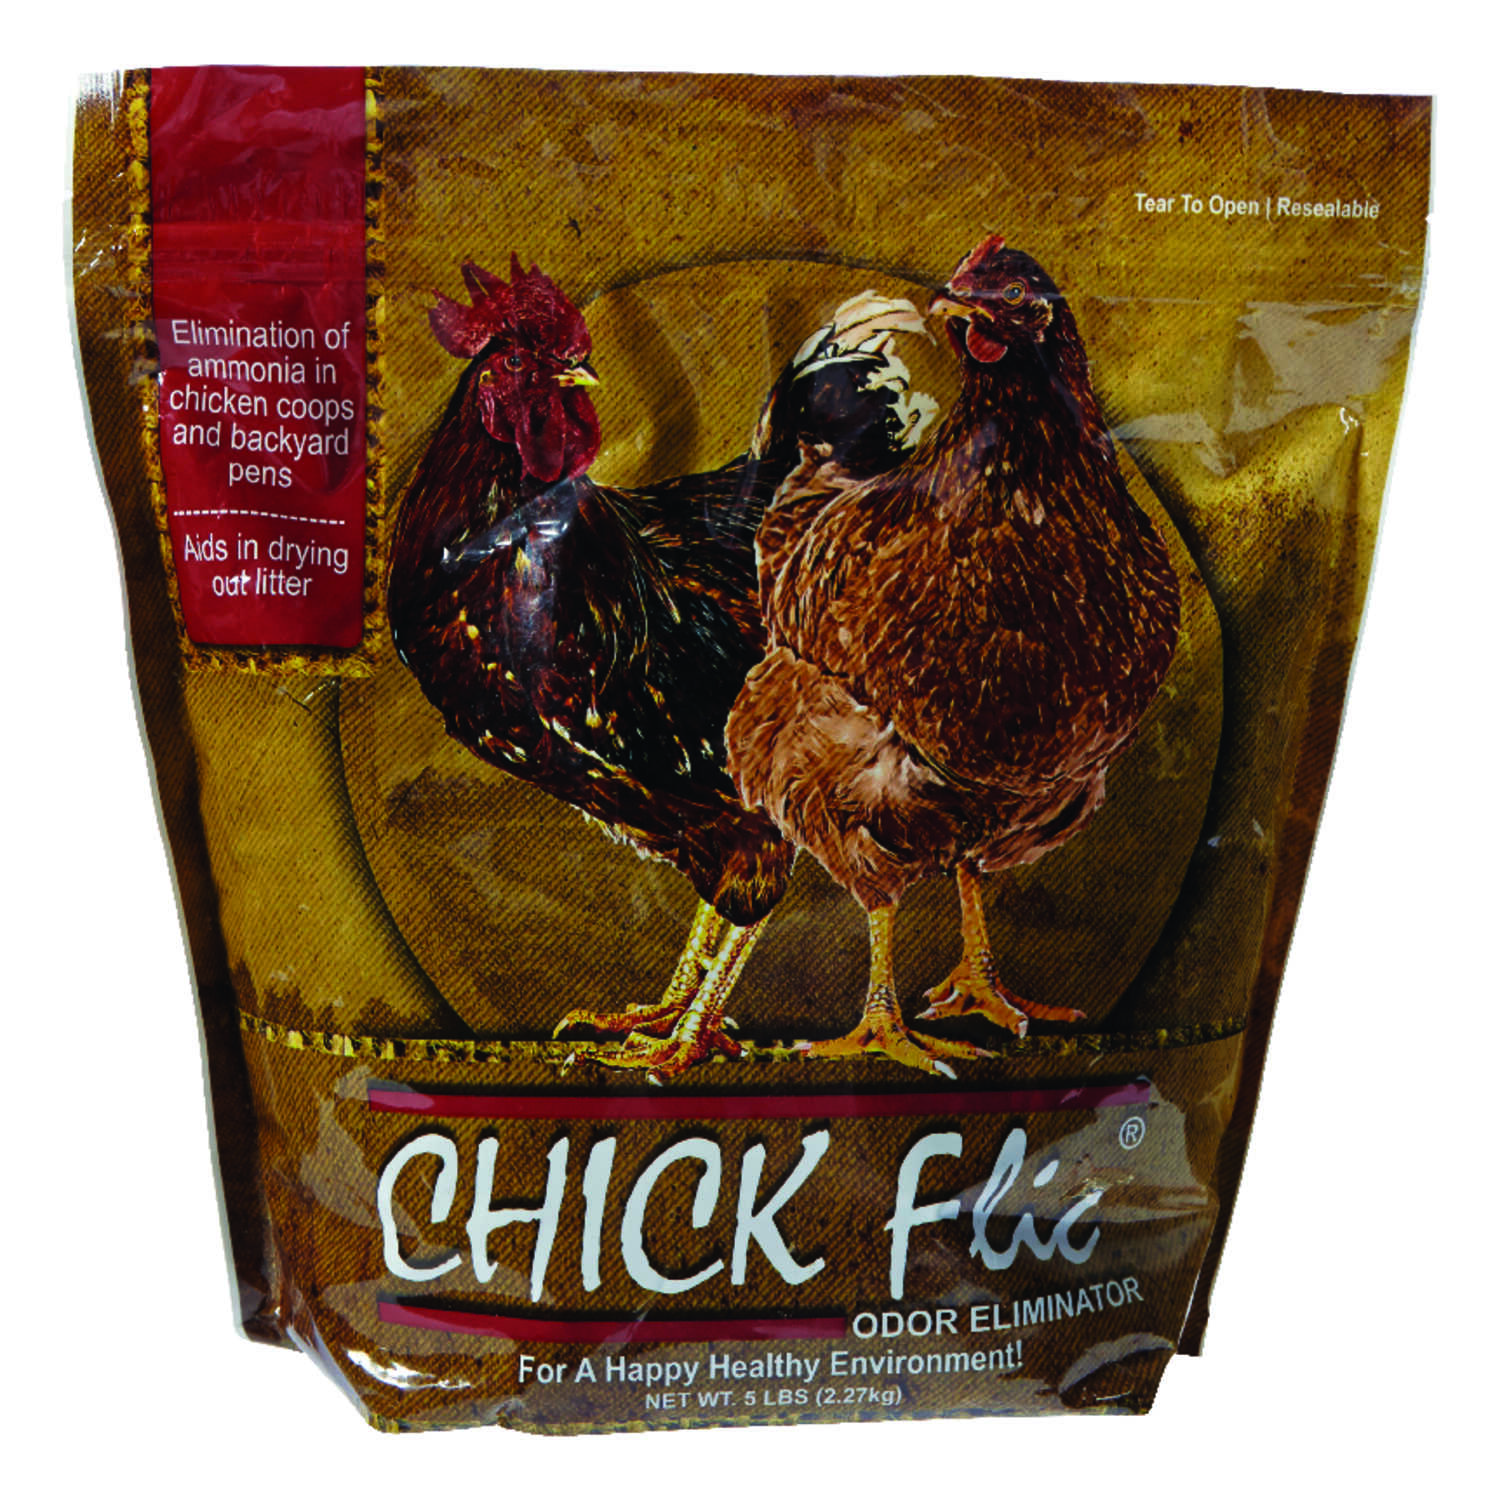 Chick Flic  Firwood  Spray Disinfectant